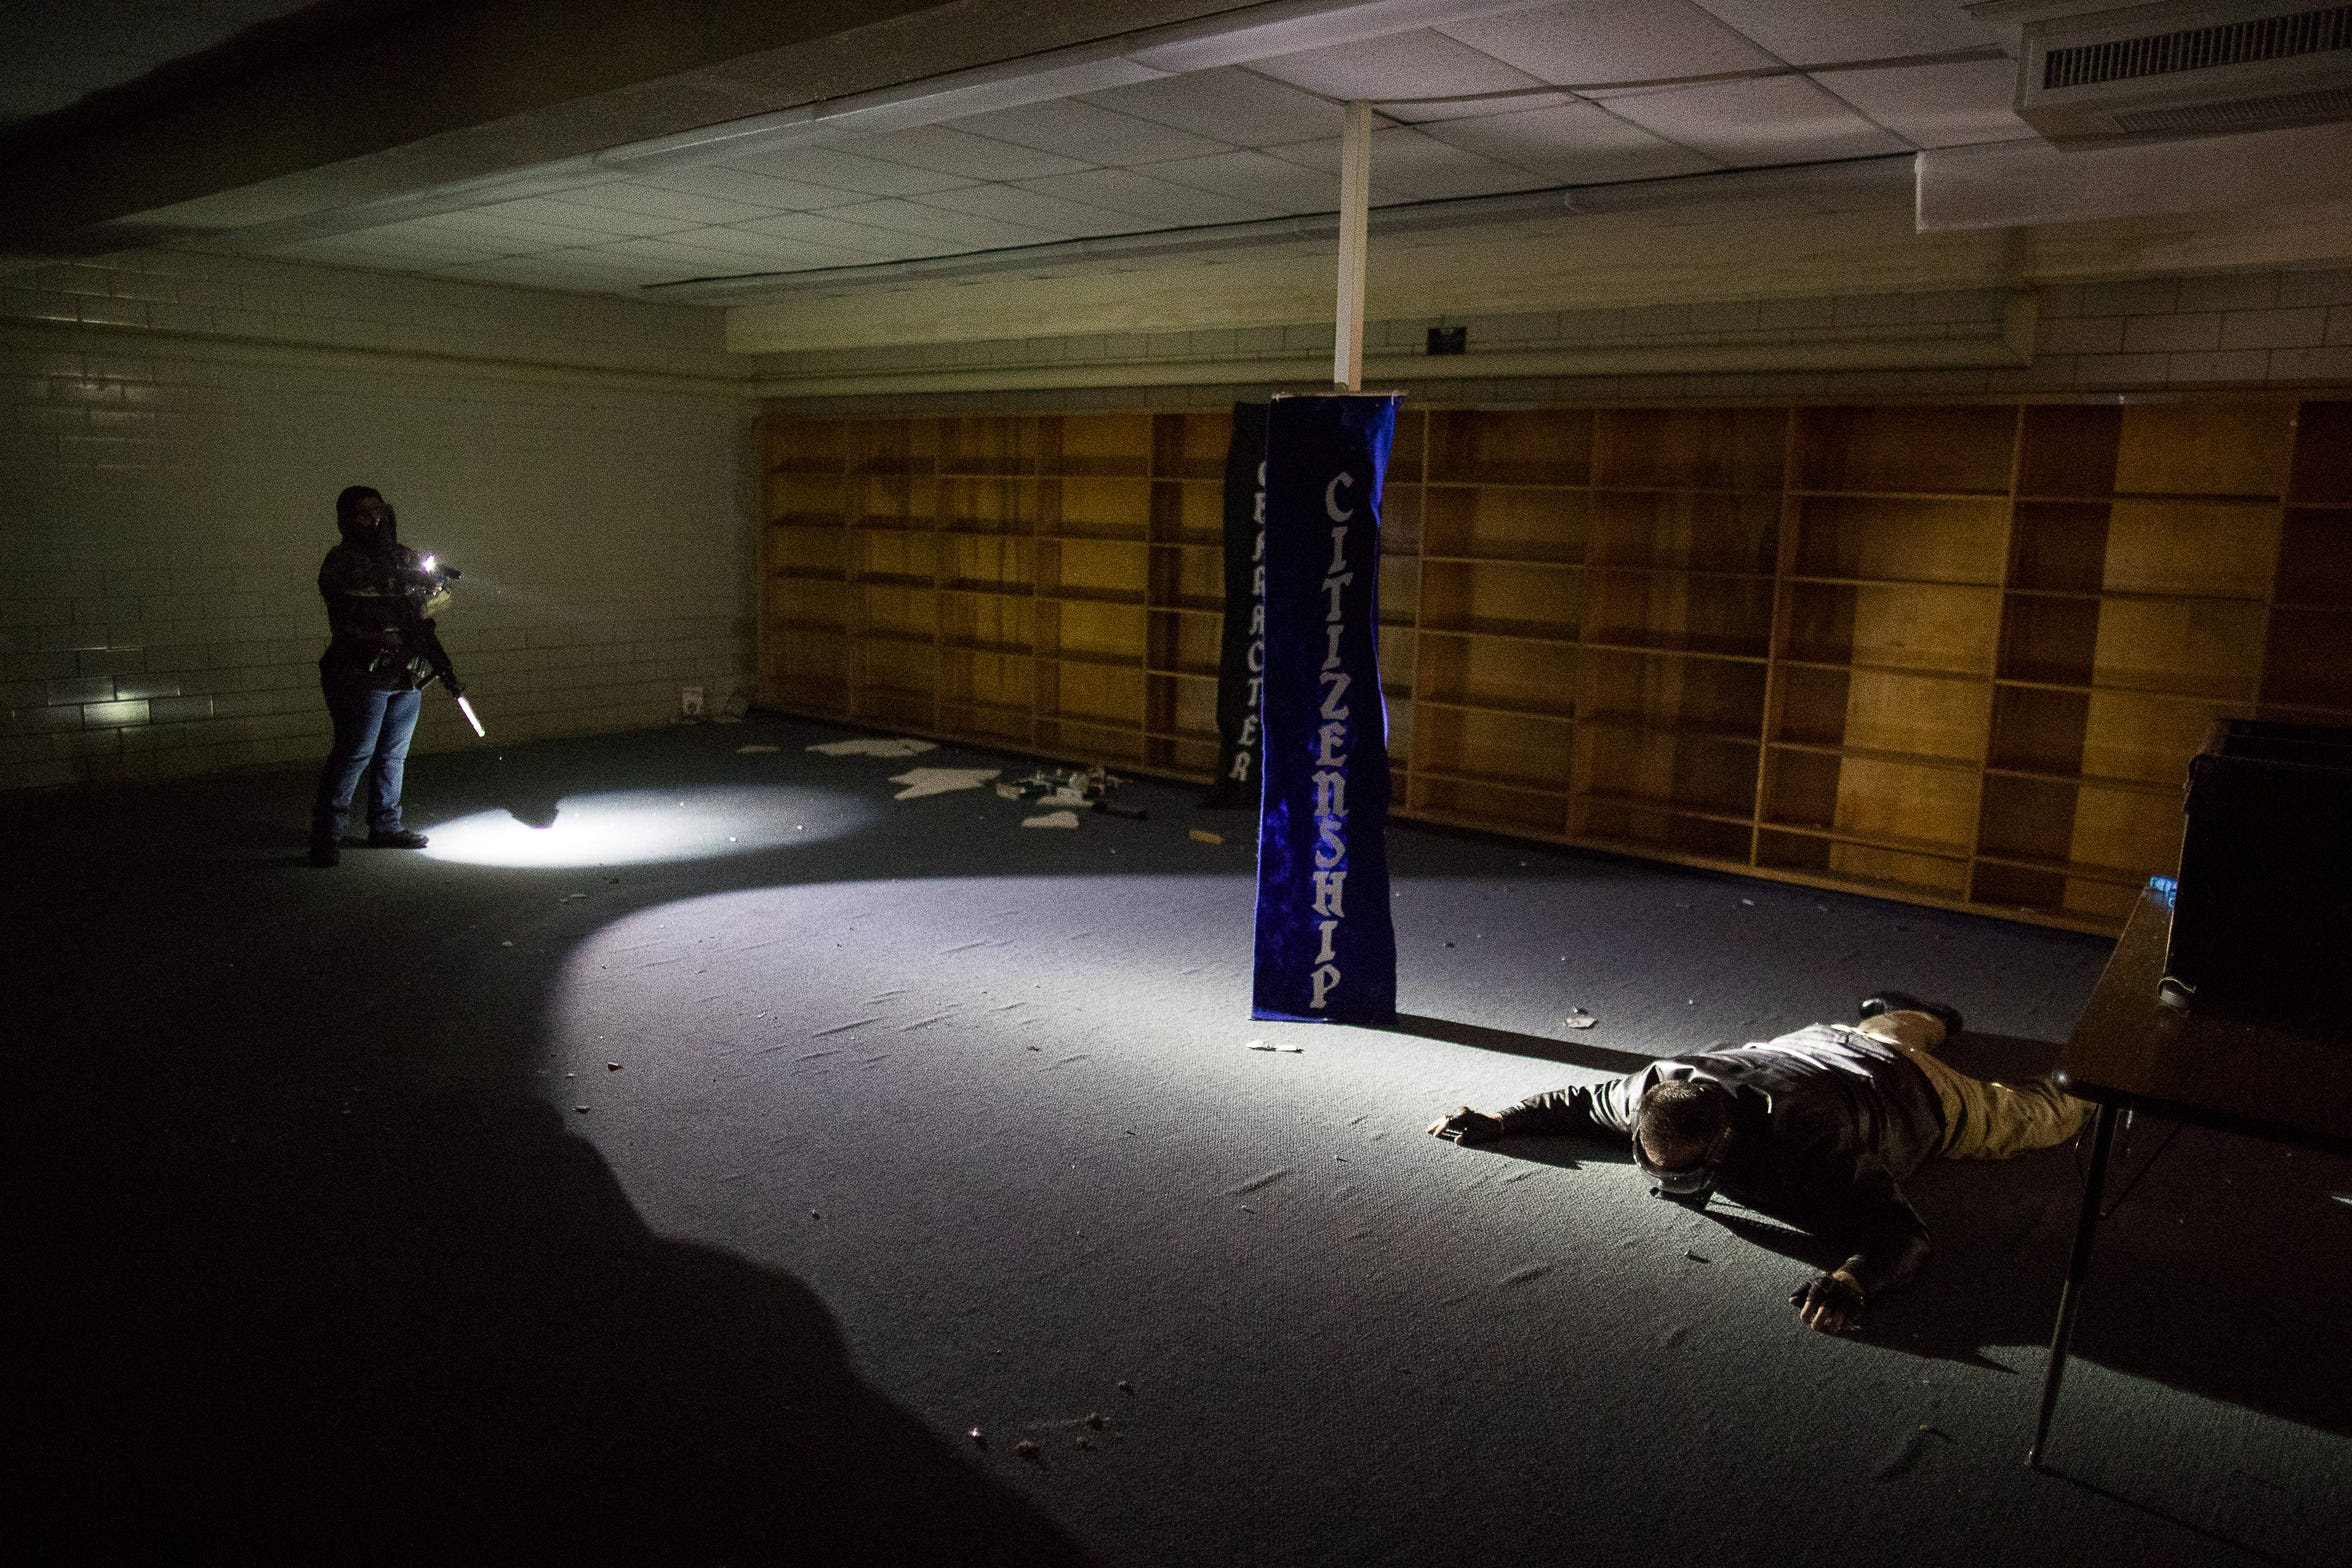 A CCISD police officer shines a light on a suspect in a dark room during an active-shooter drill at the old Cullen Middle School.